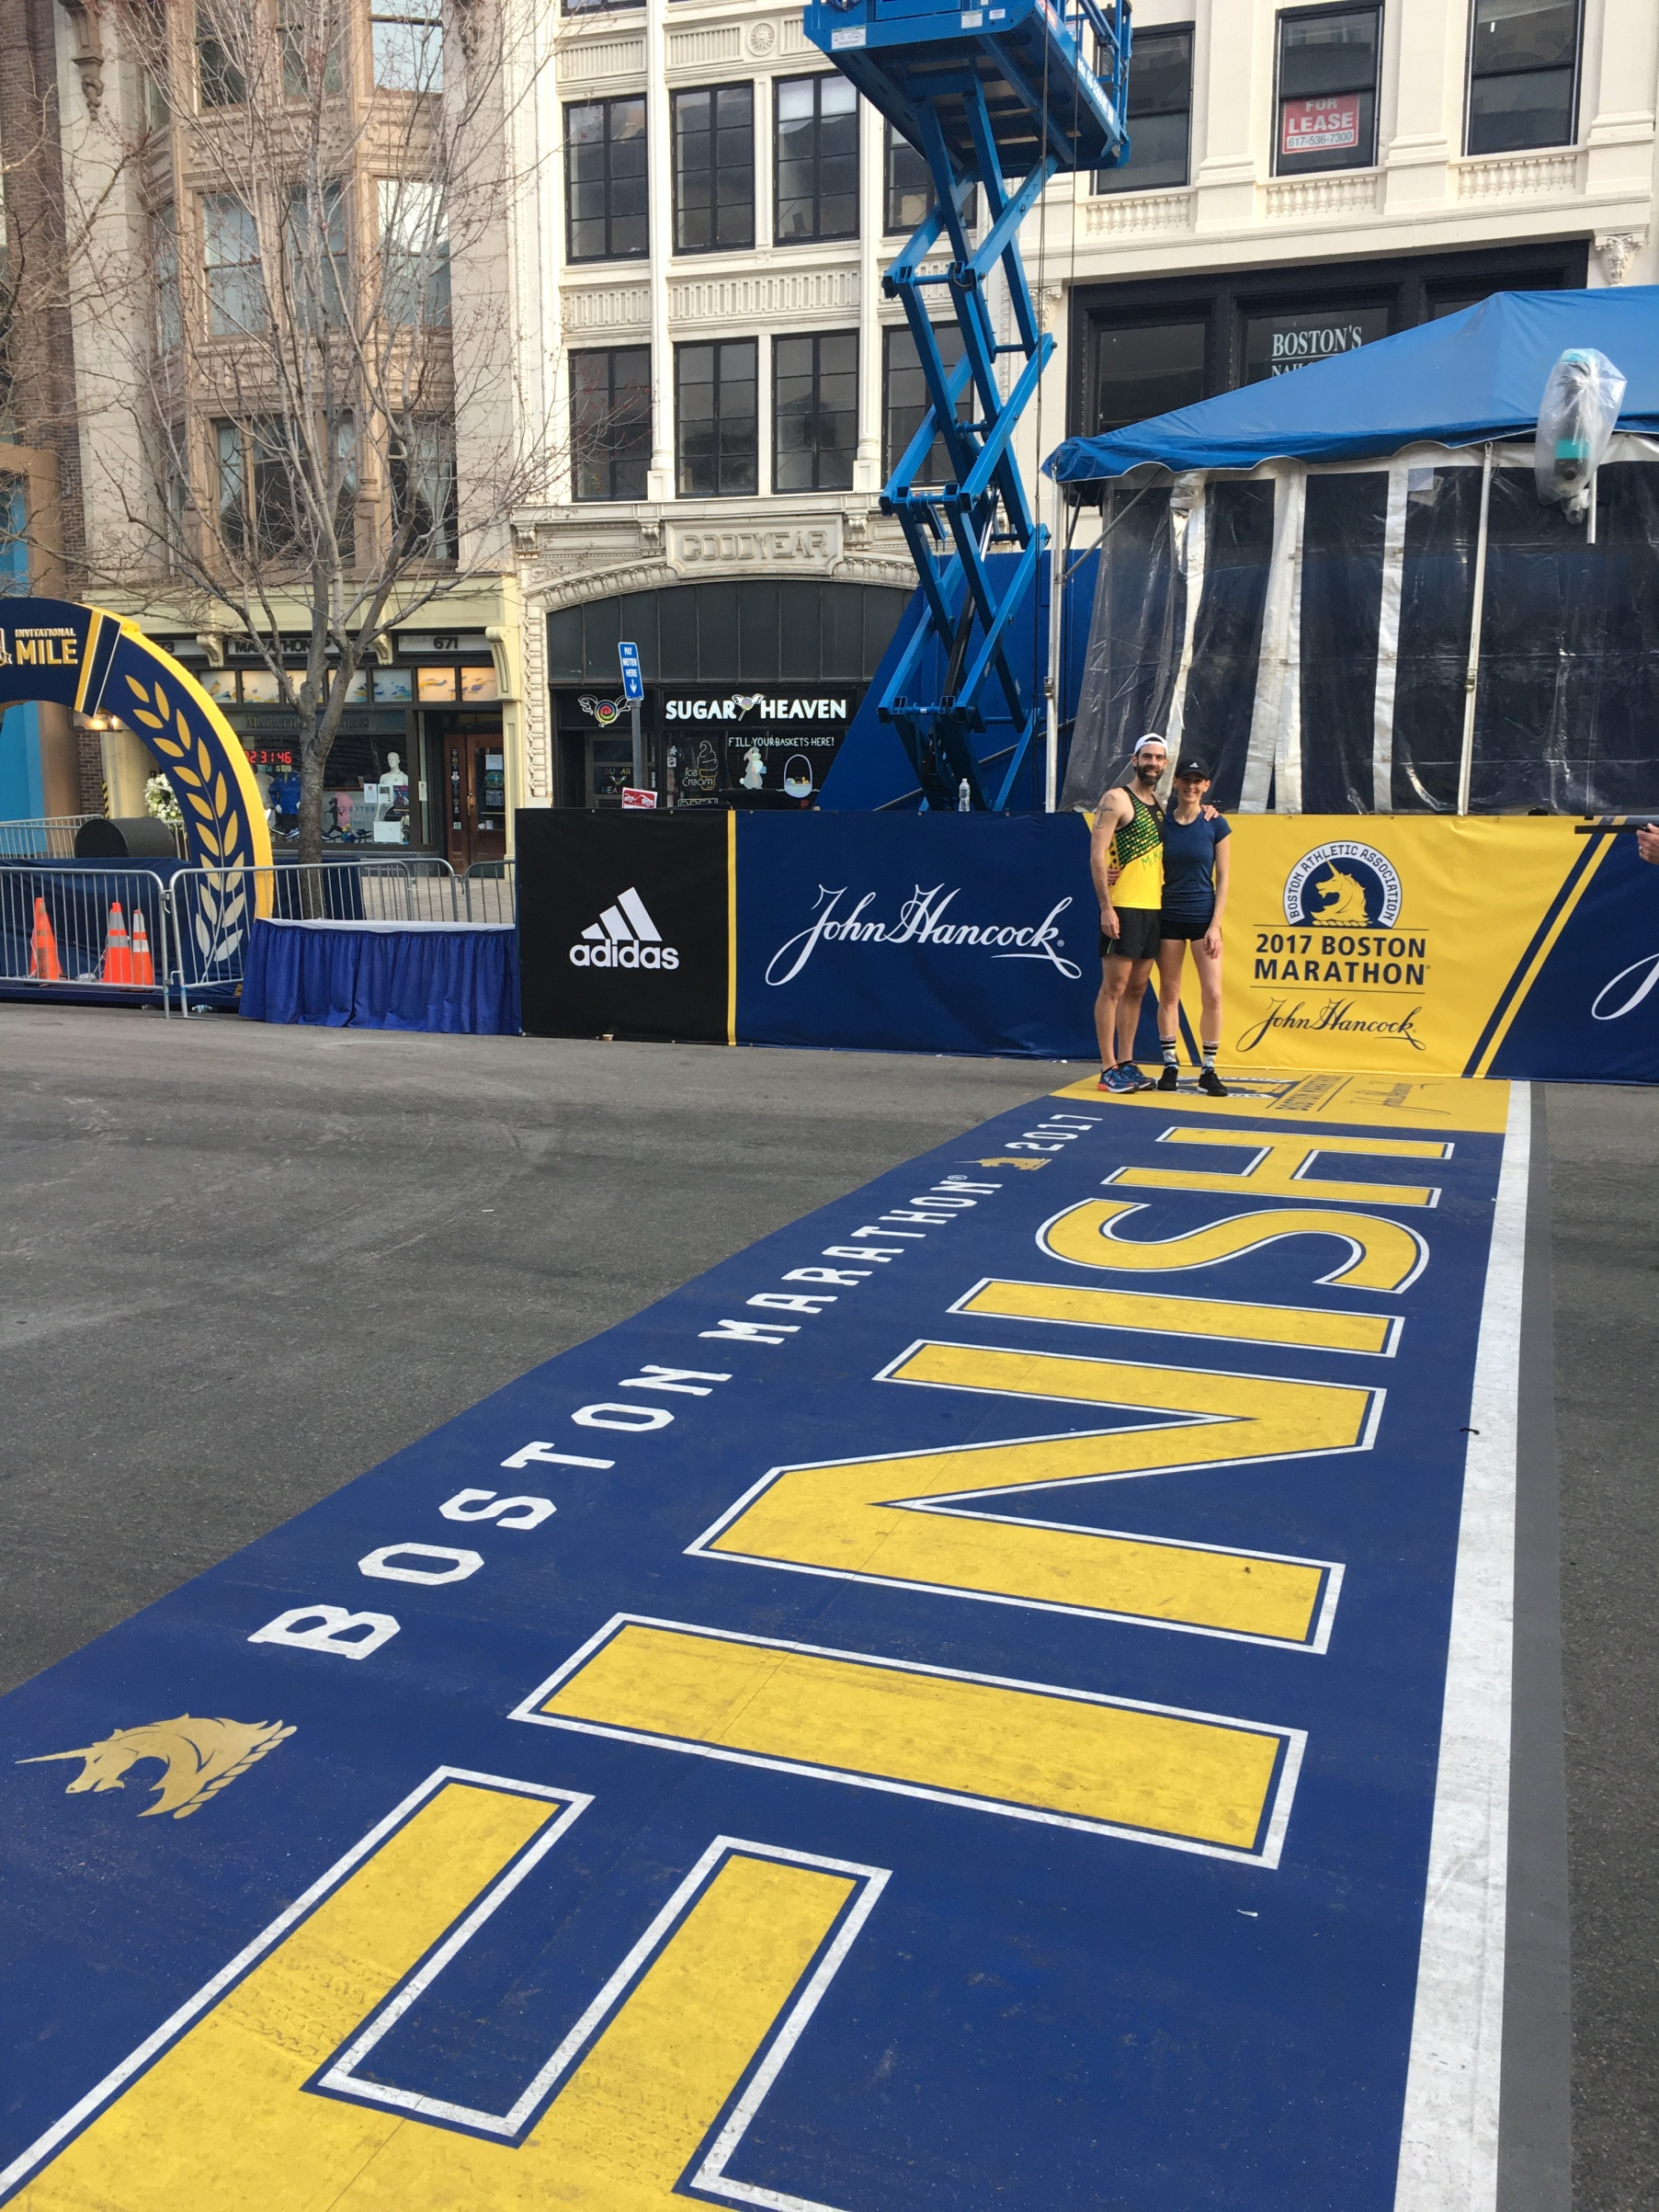 boston-marathon-finish-line-boylston